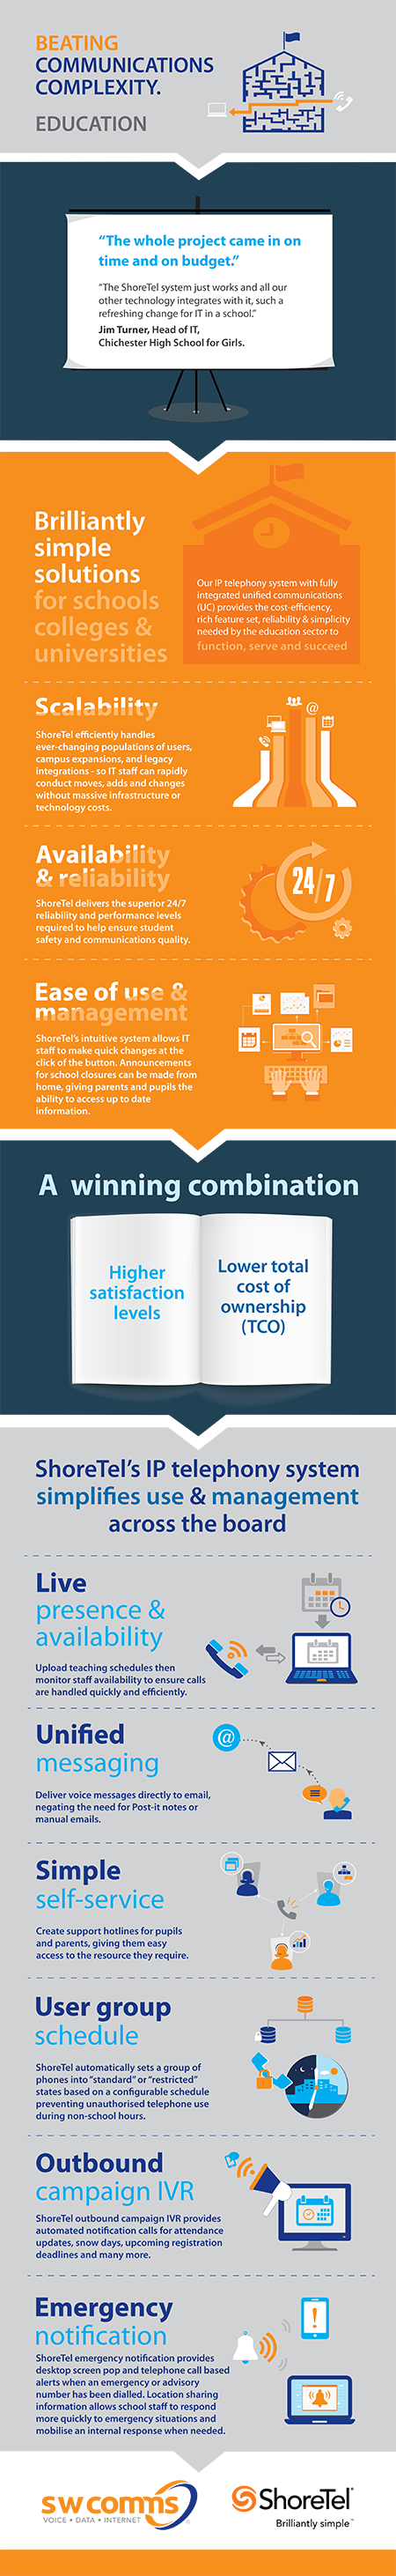 Infographic depicting how to overcome communications complexity for the education sector